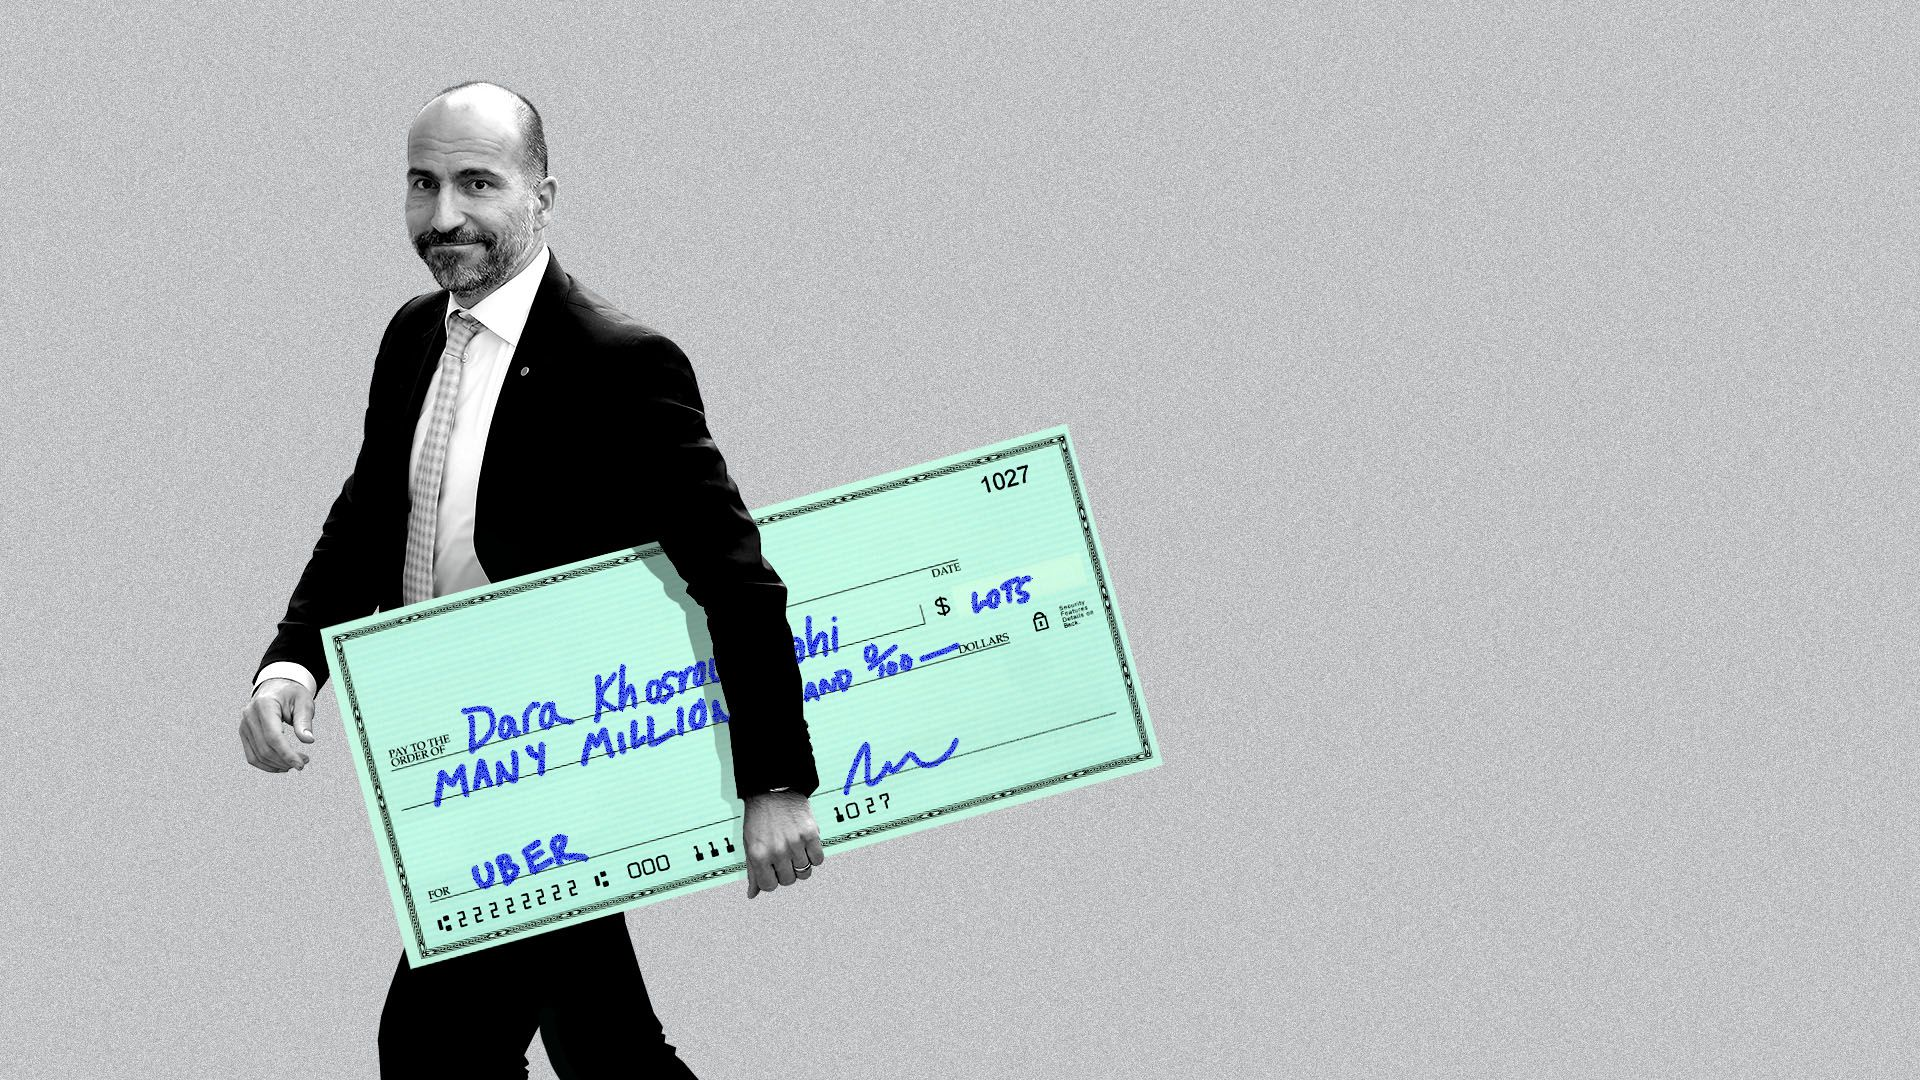 Illustration of Uber CEO Dara Khosrowshahi holding a giant check